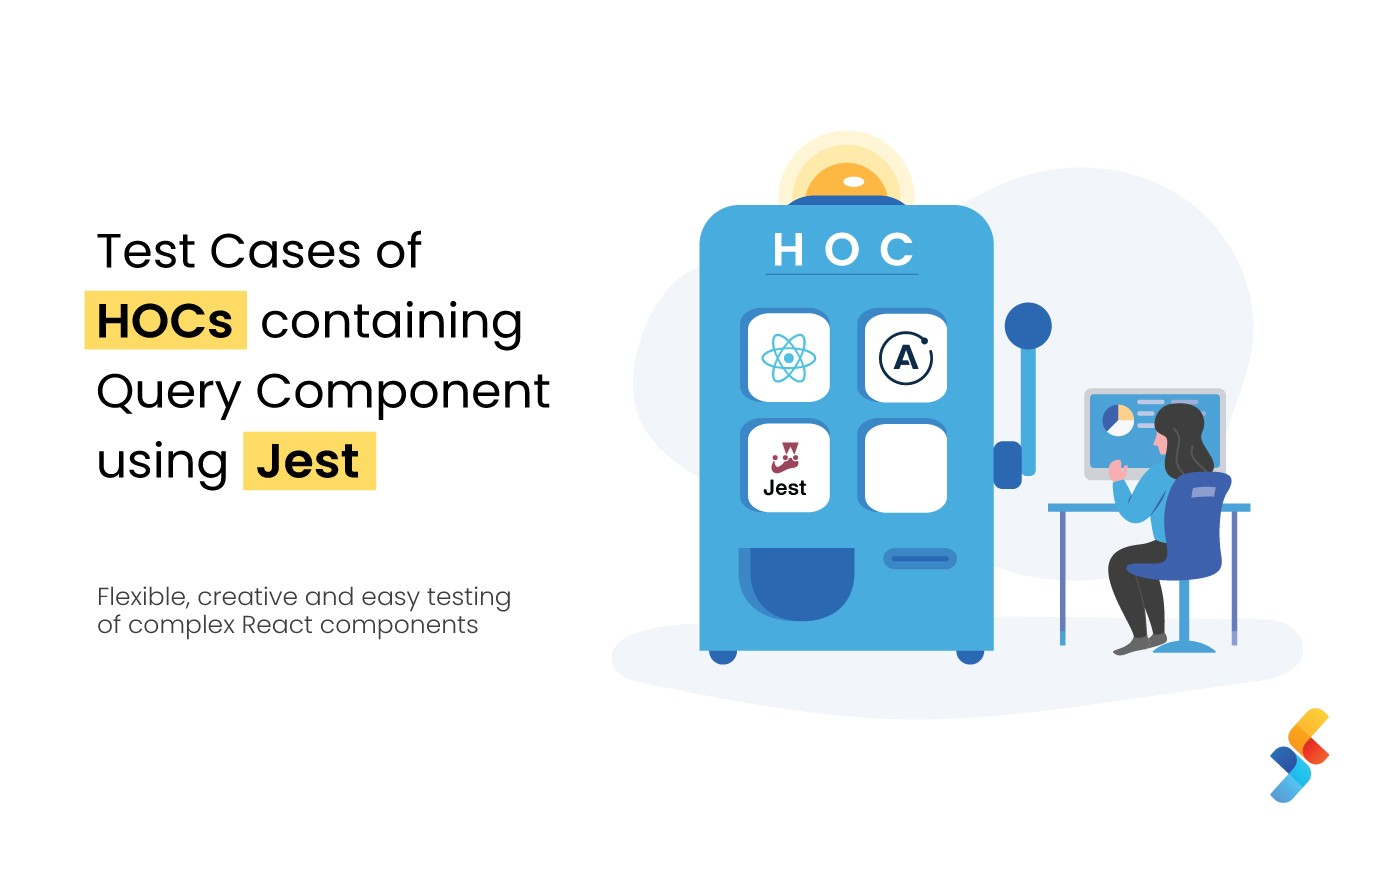 Test Cases of HOCs containing Query Component using Jest